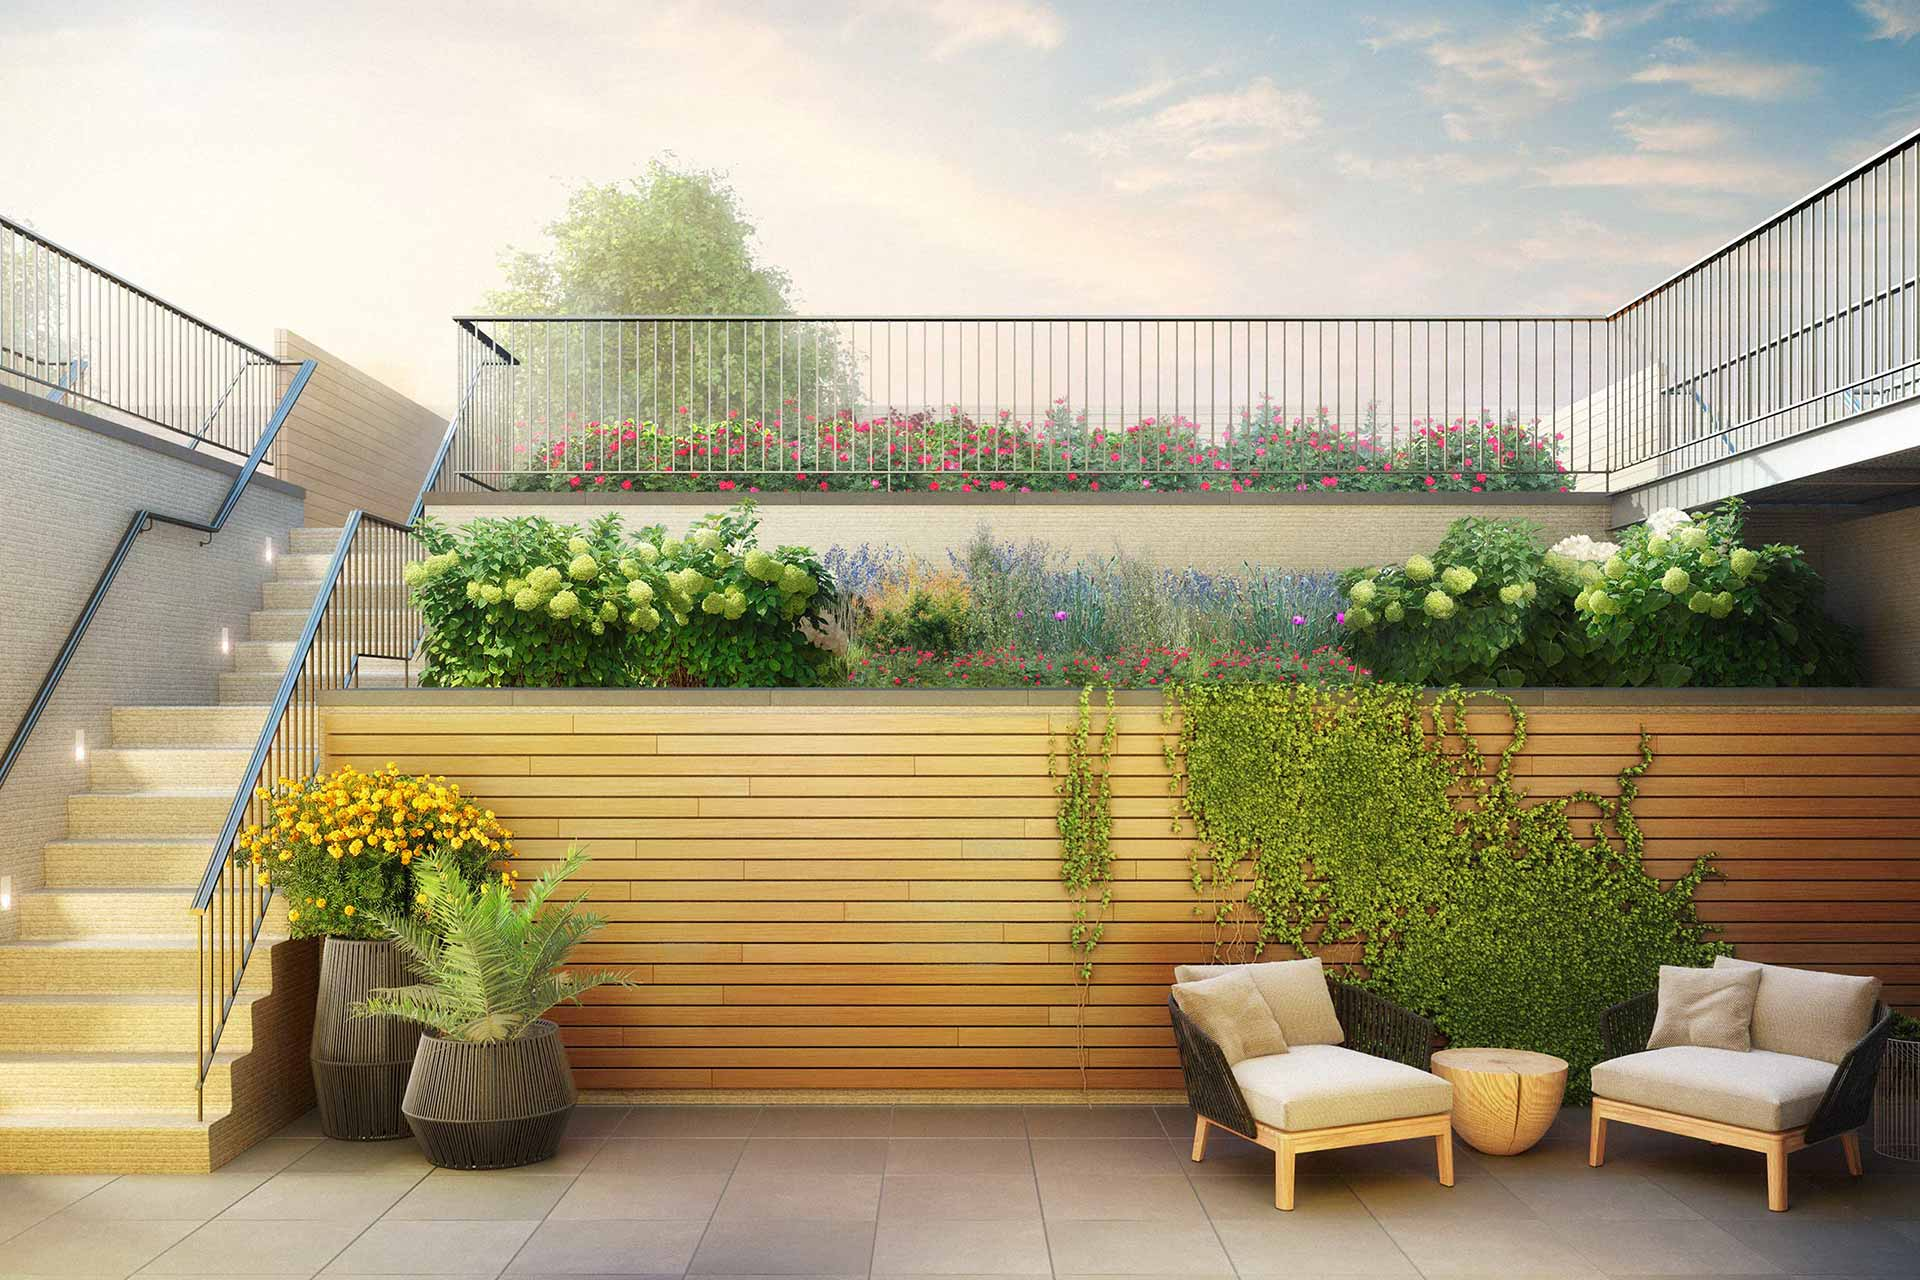 Rendering of backyard garden